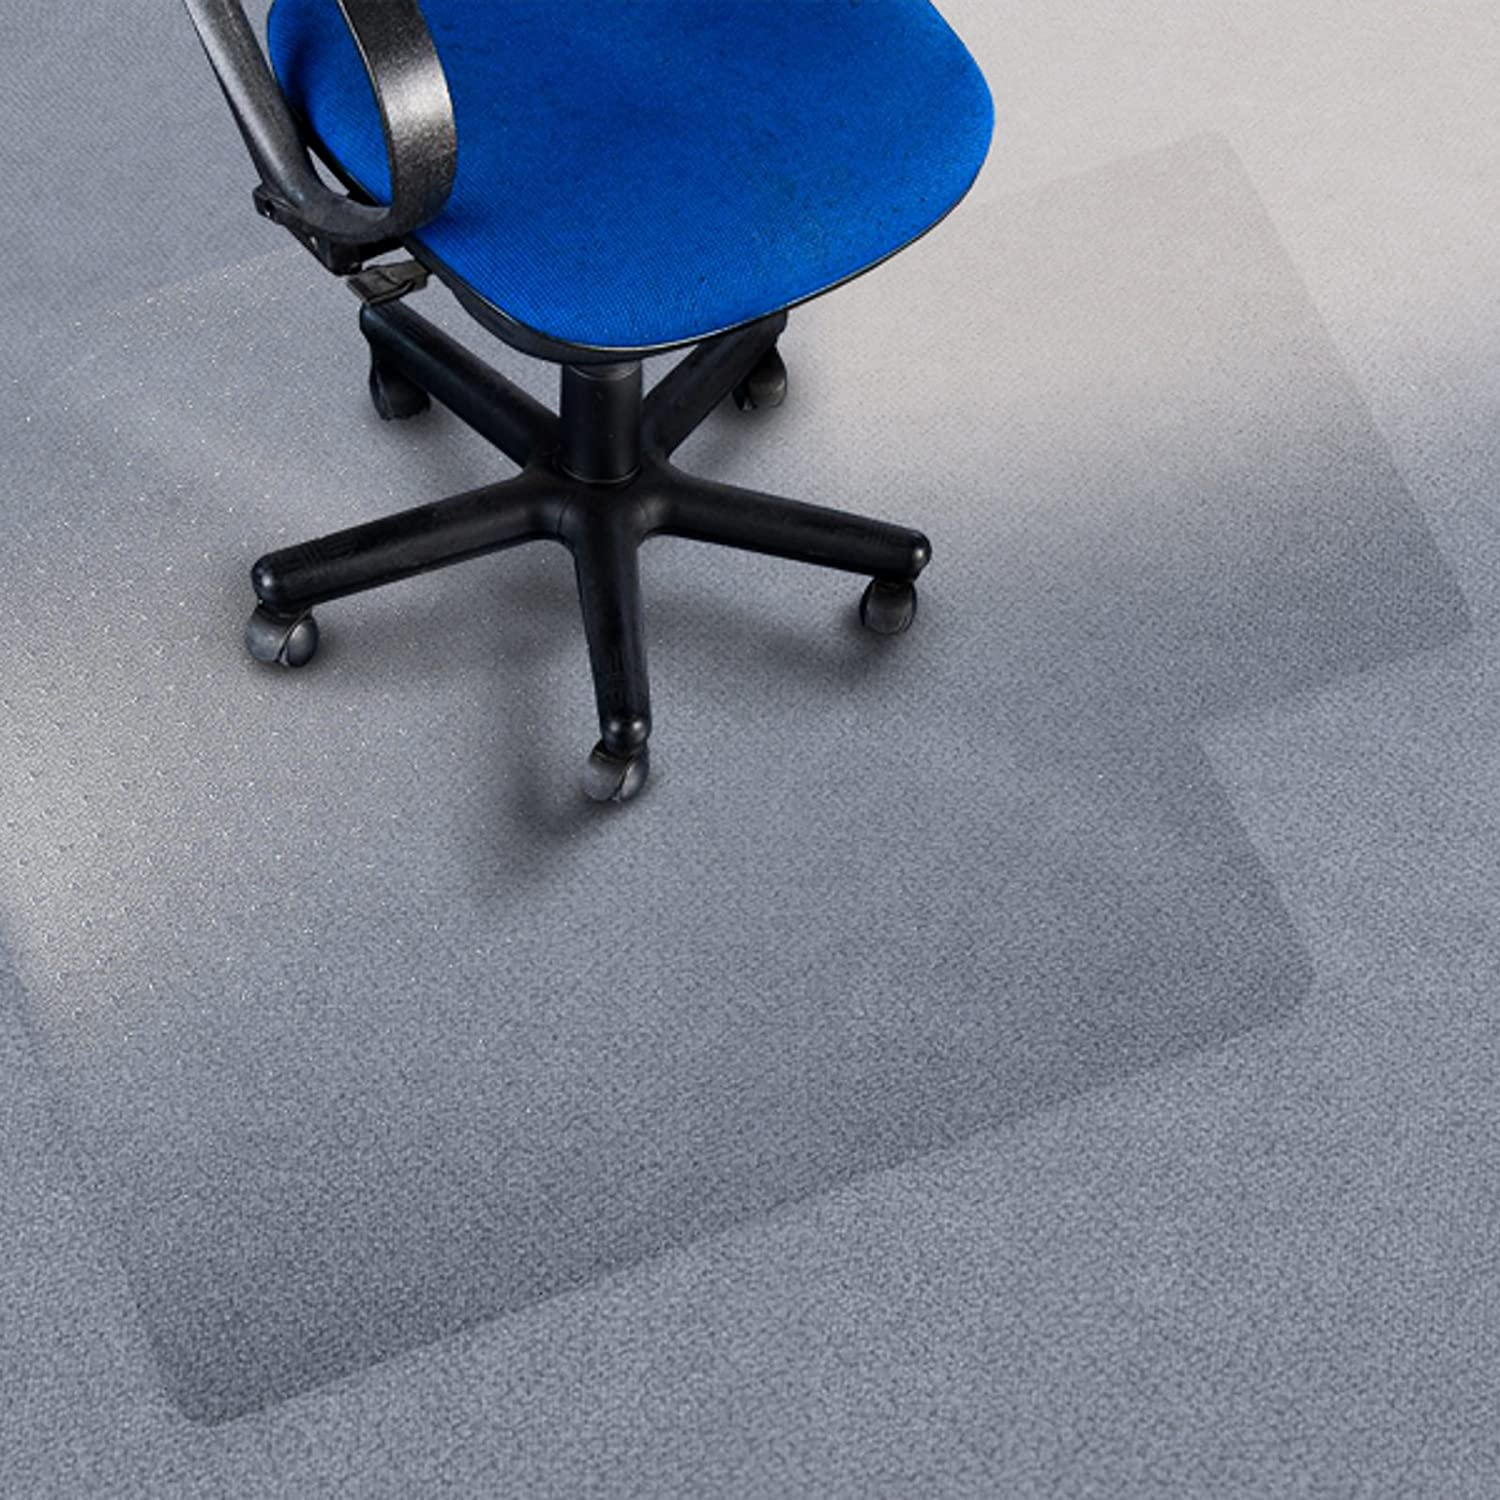 office marshal premium chair mat with lip 36 x 48 carpet floor protection 100 pure